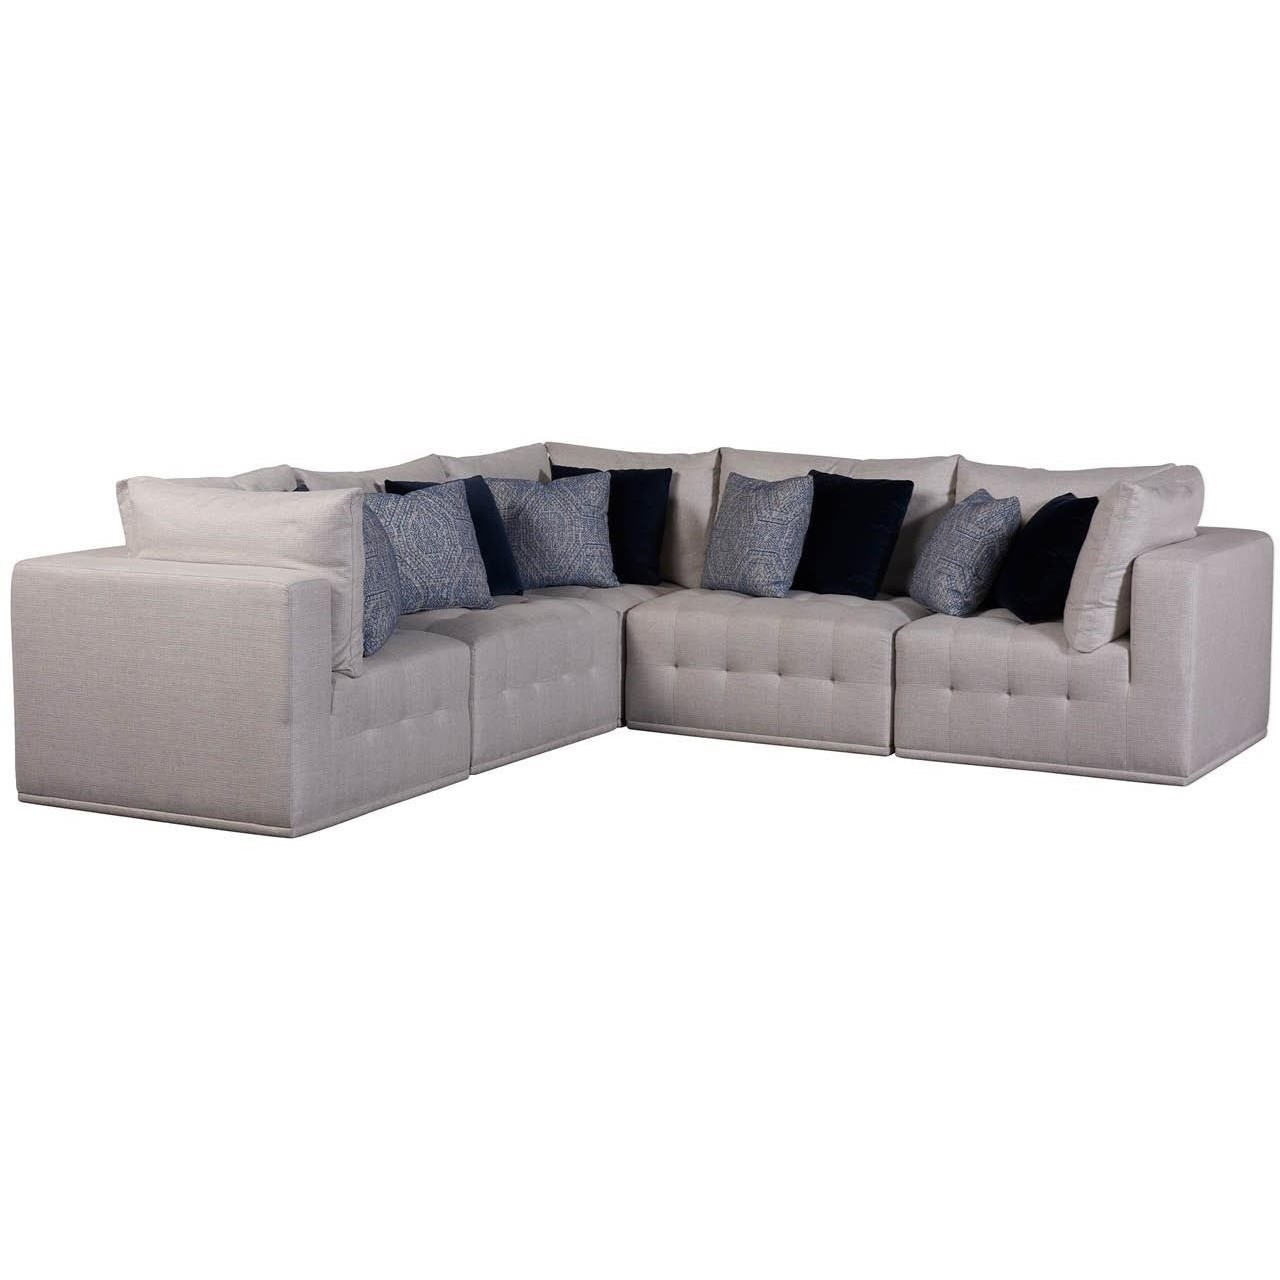 Donovan 5-Piece Sectional by Universal at Baer's Furniture